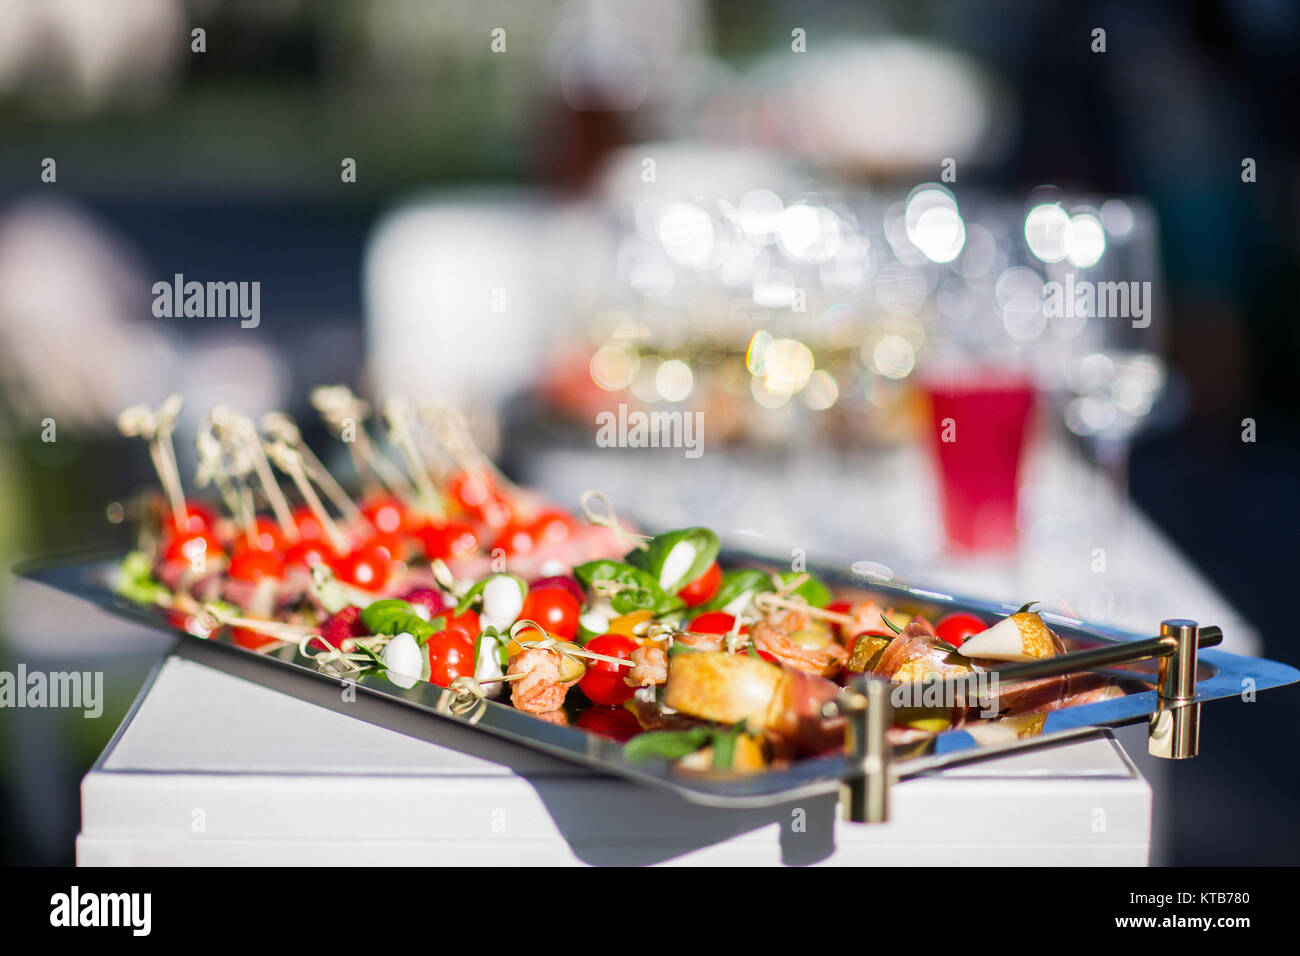 Canapes on a silver tray close up. - Stock Image